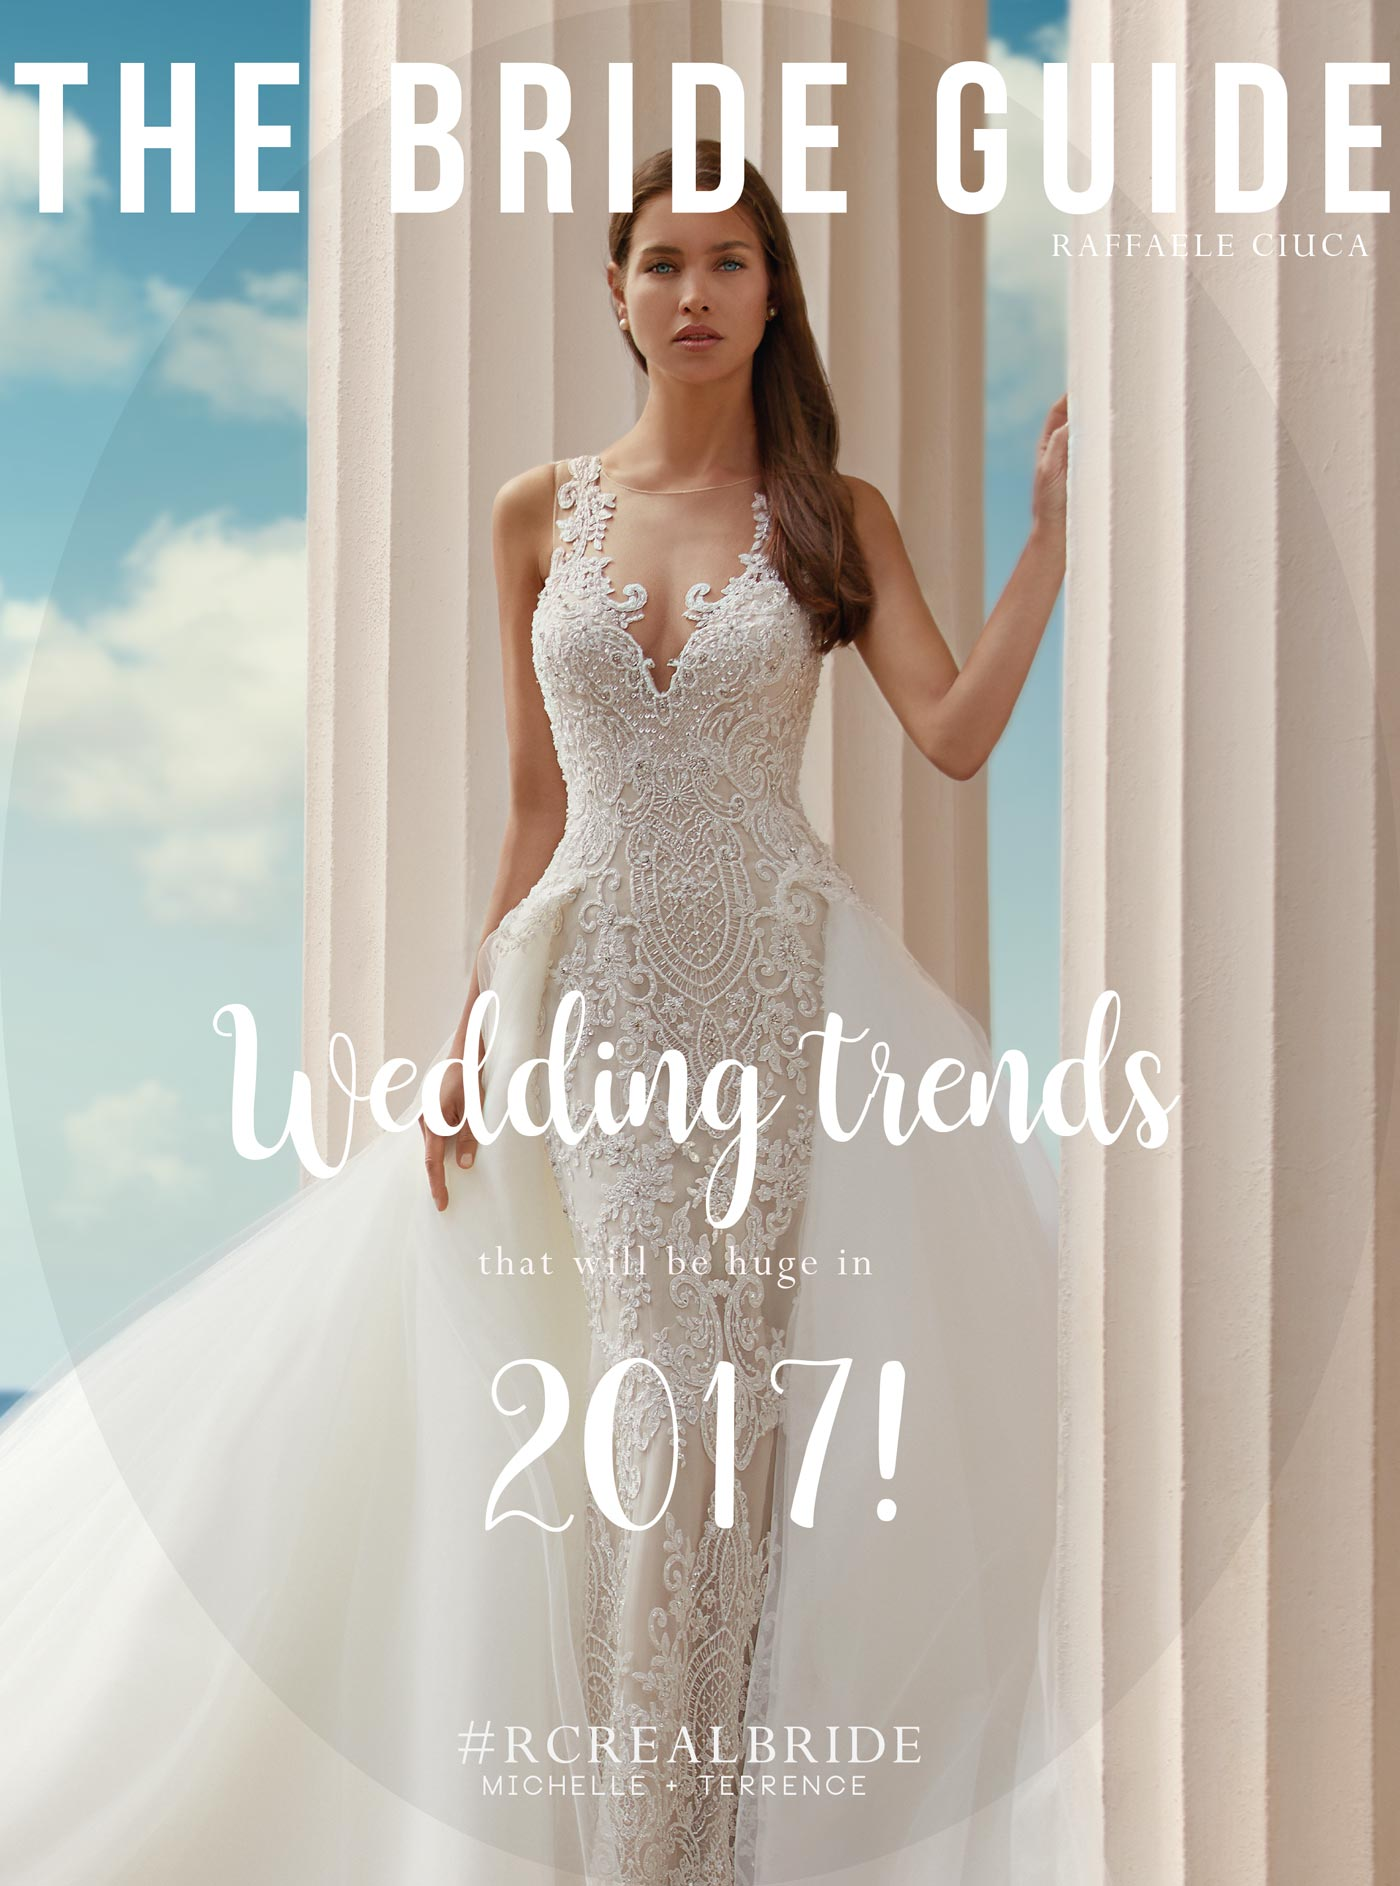 The bride guide wedding trends that will be huge in 2017, Demetrios 707 dress